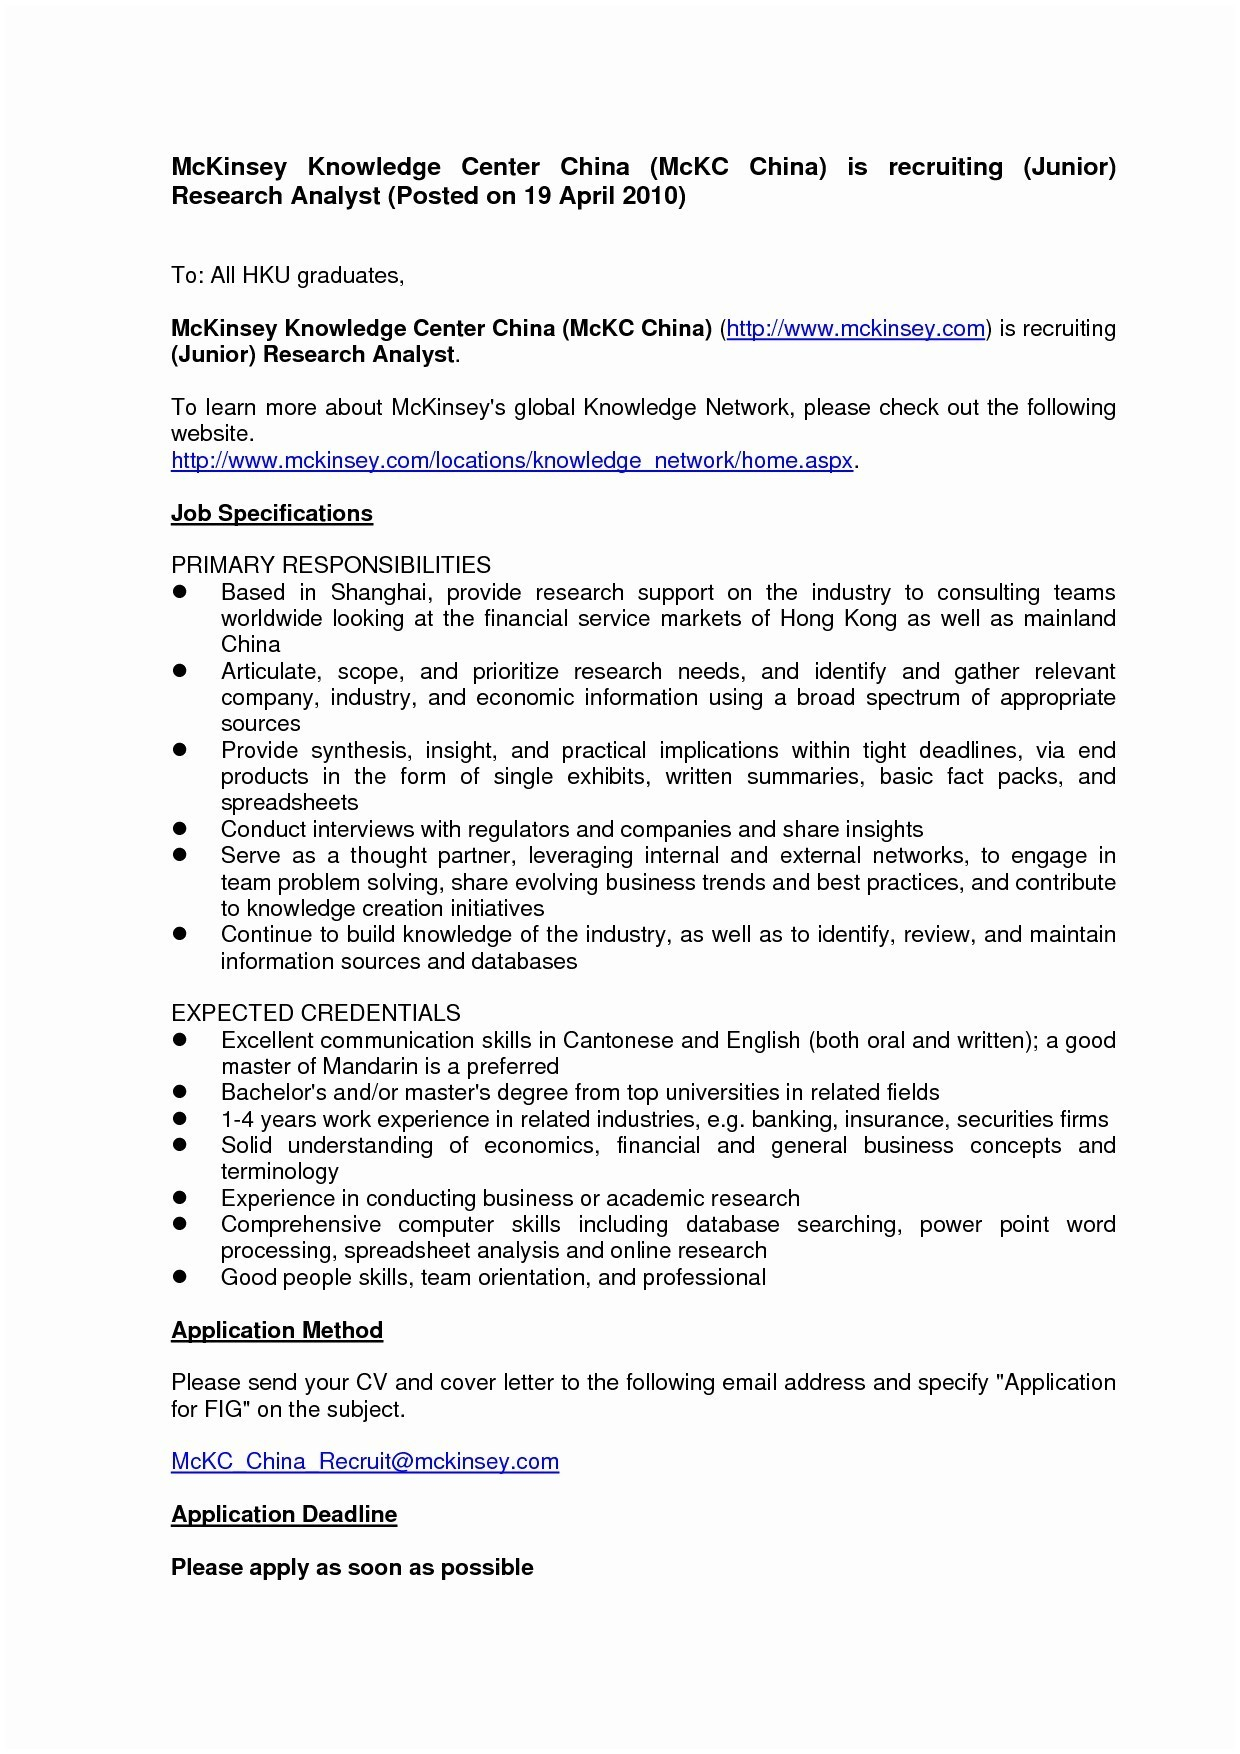 Letter Of Intent for Job Template - Letter Intent for Job Opening New Job Fer Letter Template Us Copy